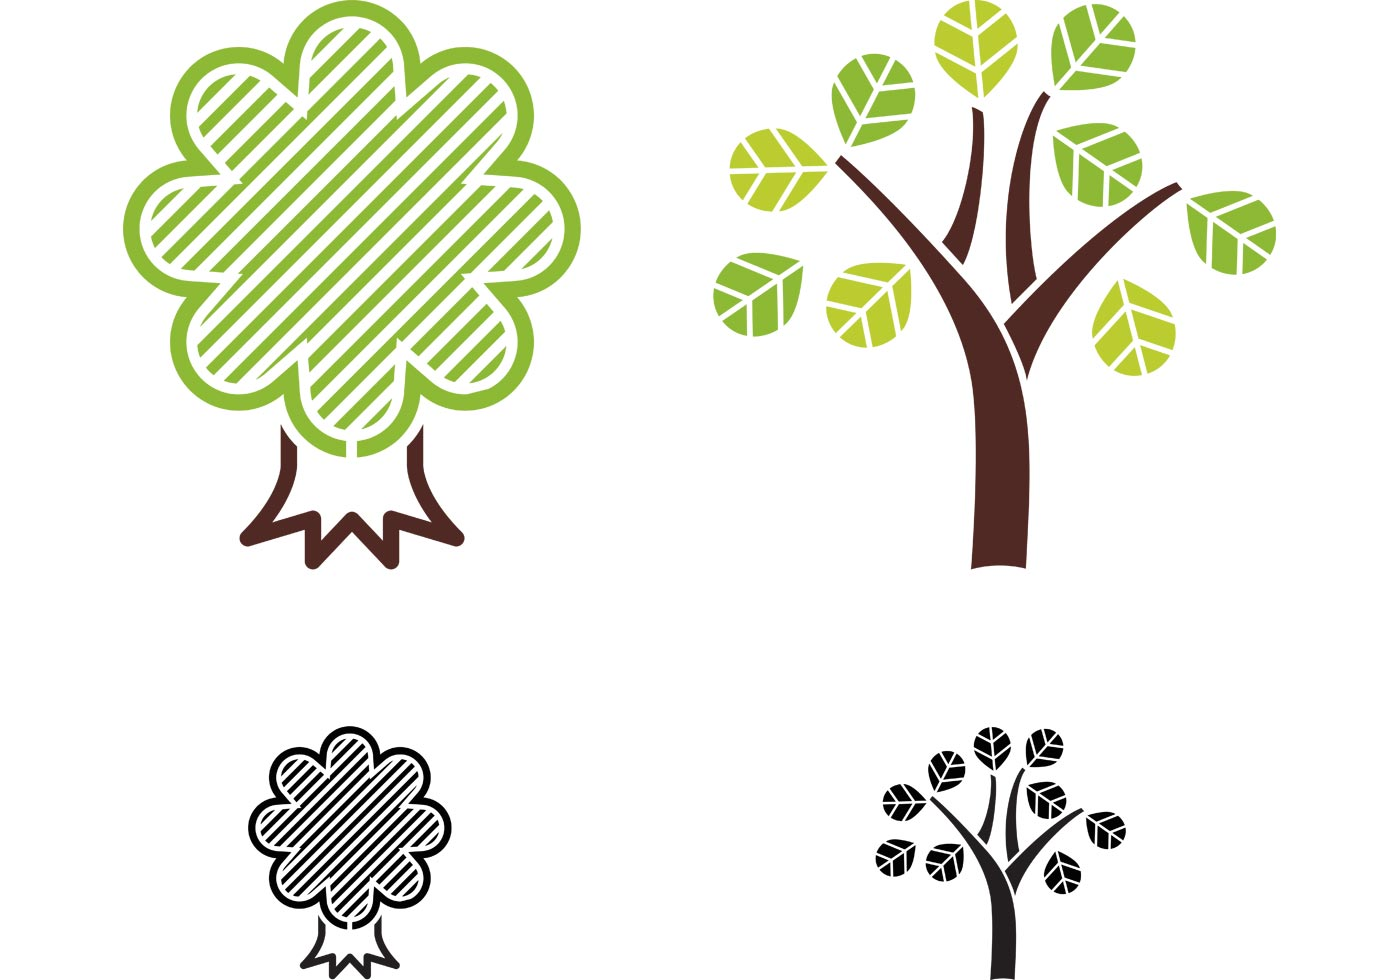 Tree Branch Silhouette Images Stock Photos amp Vectors